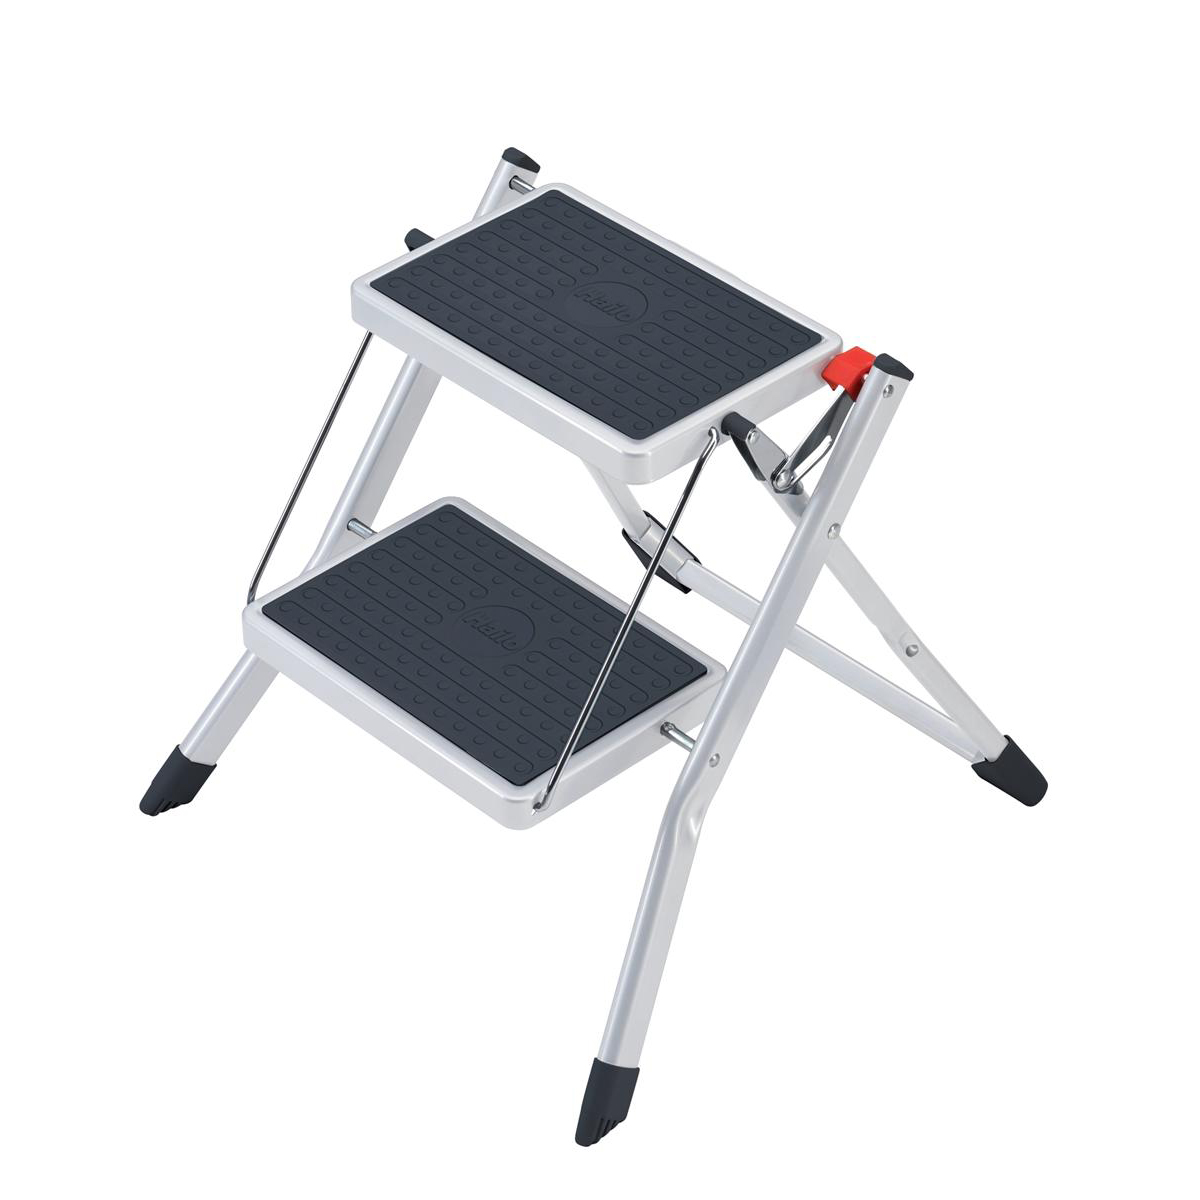 Steps 5 Star Facilities Mini Stool/Ladder Two Step Steel Folding Single Sided Load Capacity 150kg